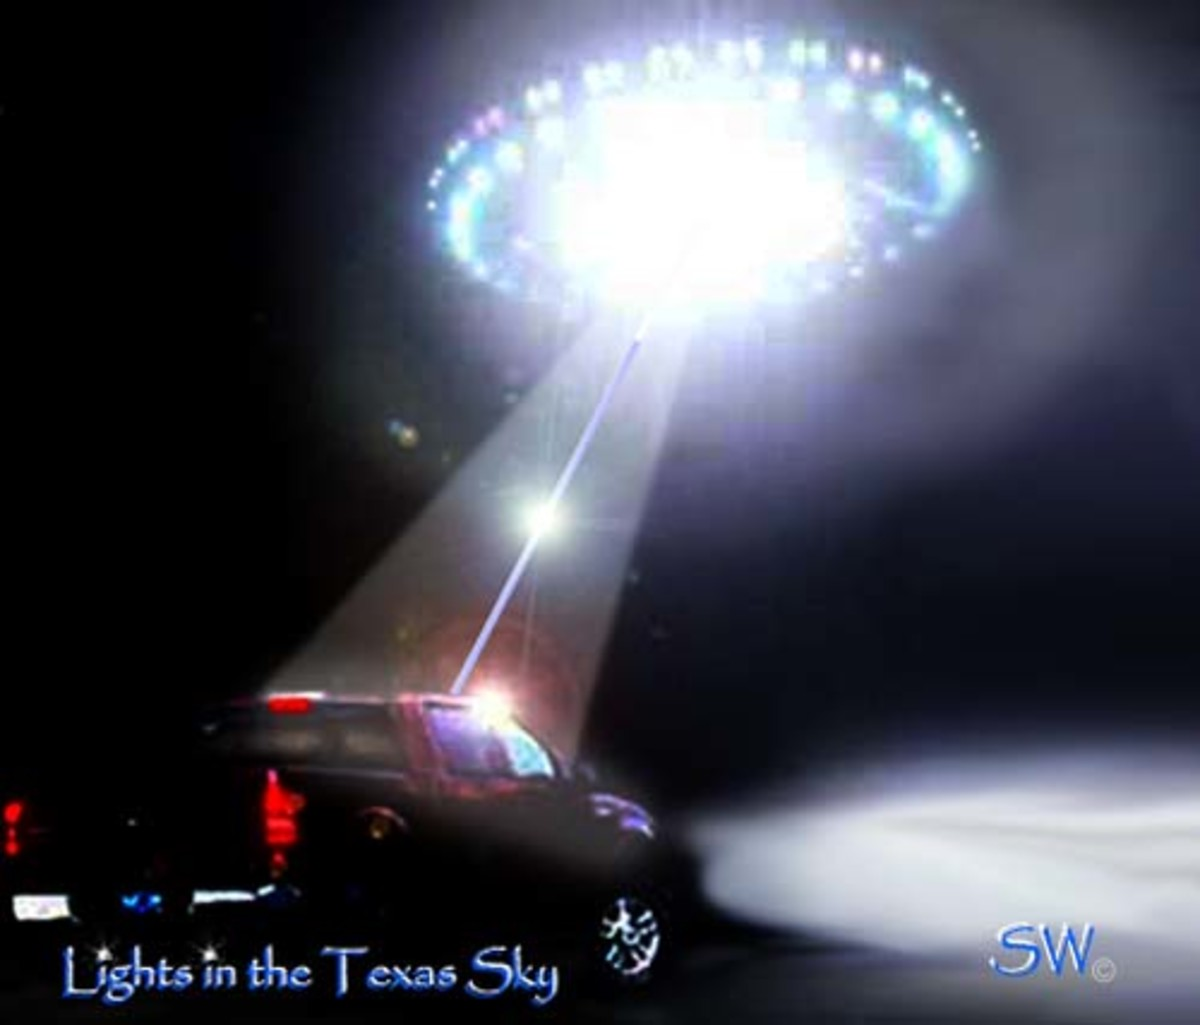 Alien abduction cases present researchers with both difficulty in their work and a chance to gain vital evidence.